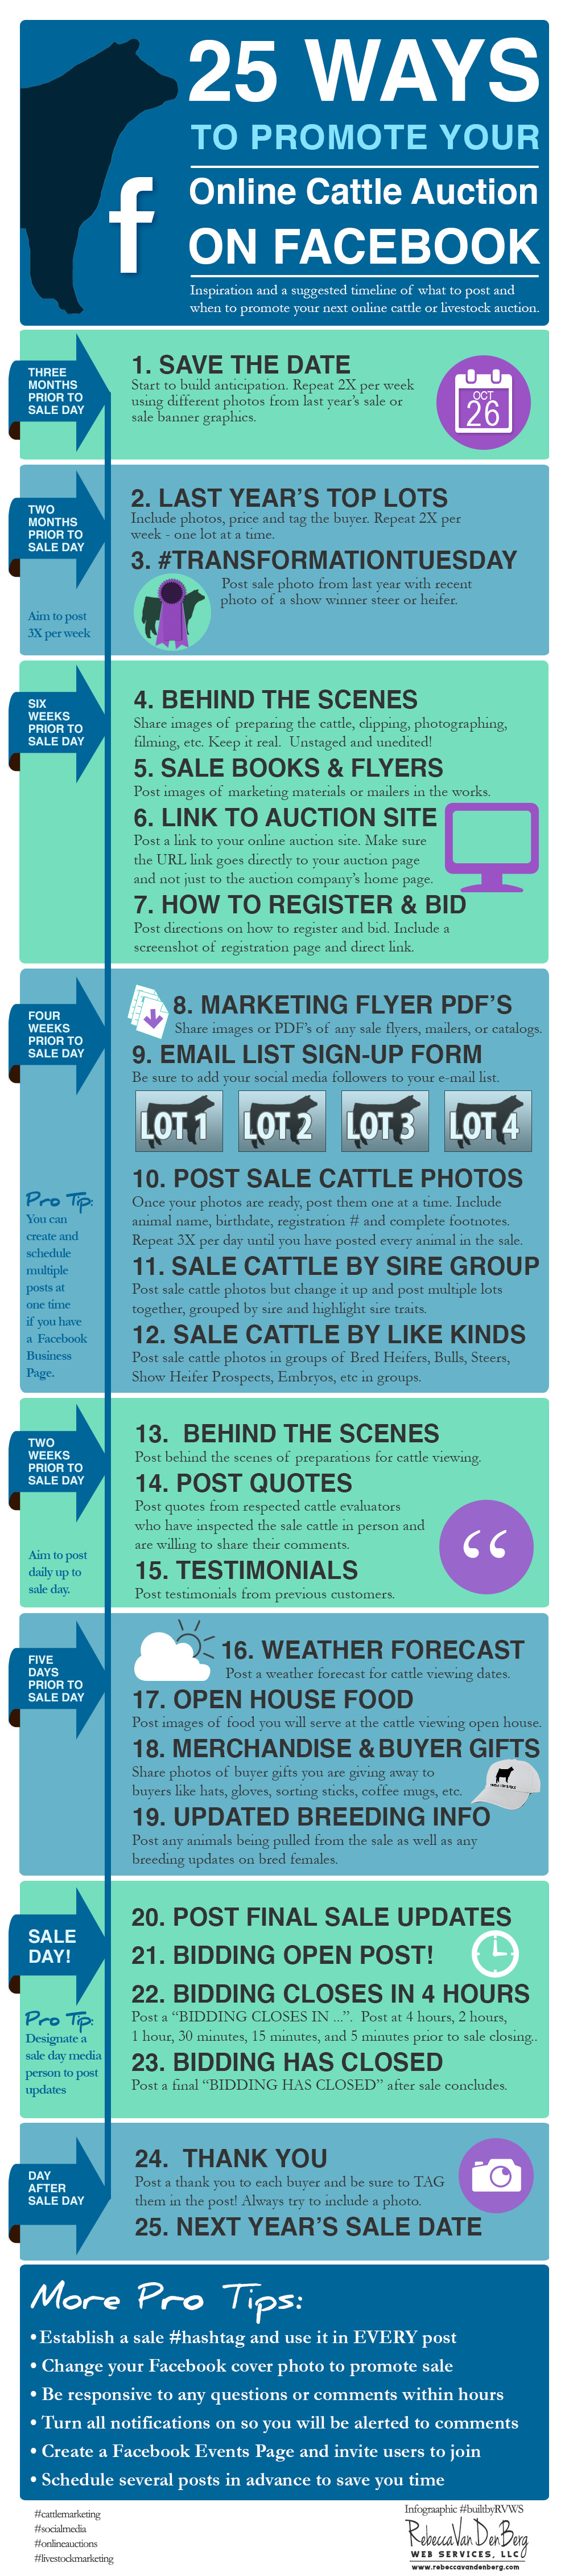 25 Ways to Promote Your Online Cattle Auction on Facebook